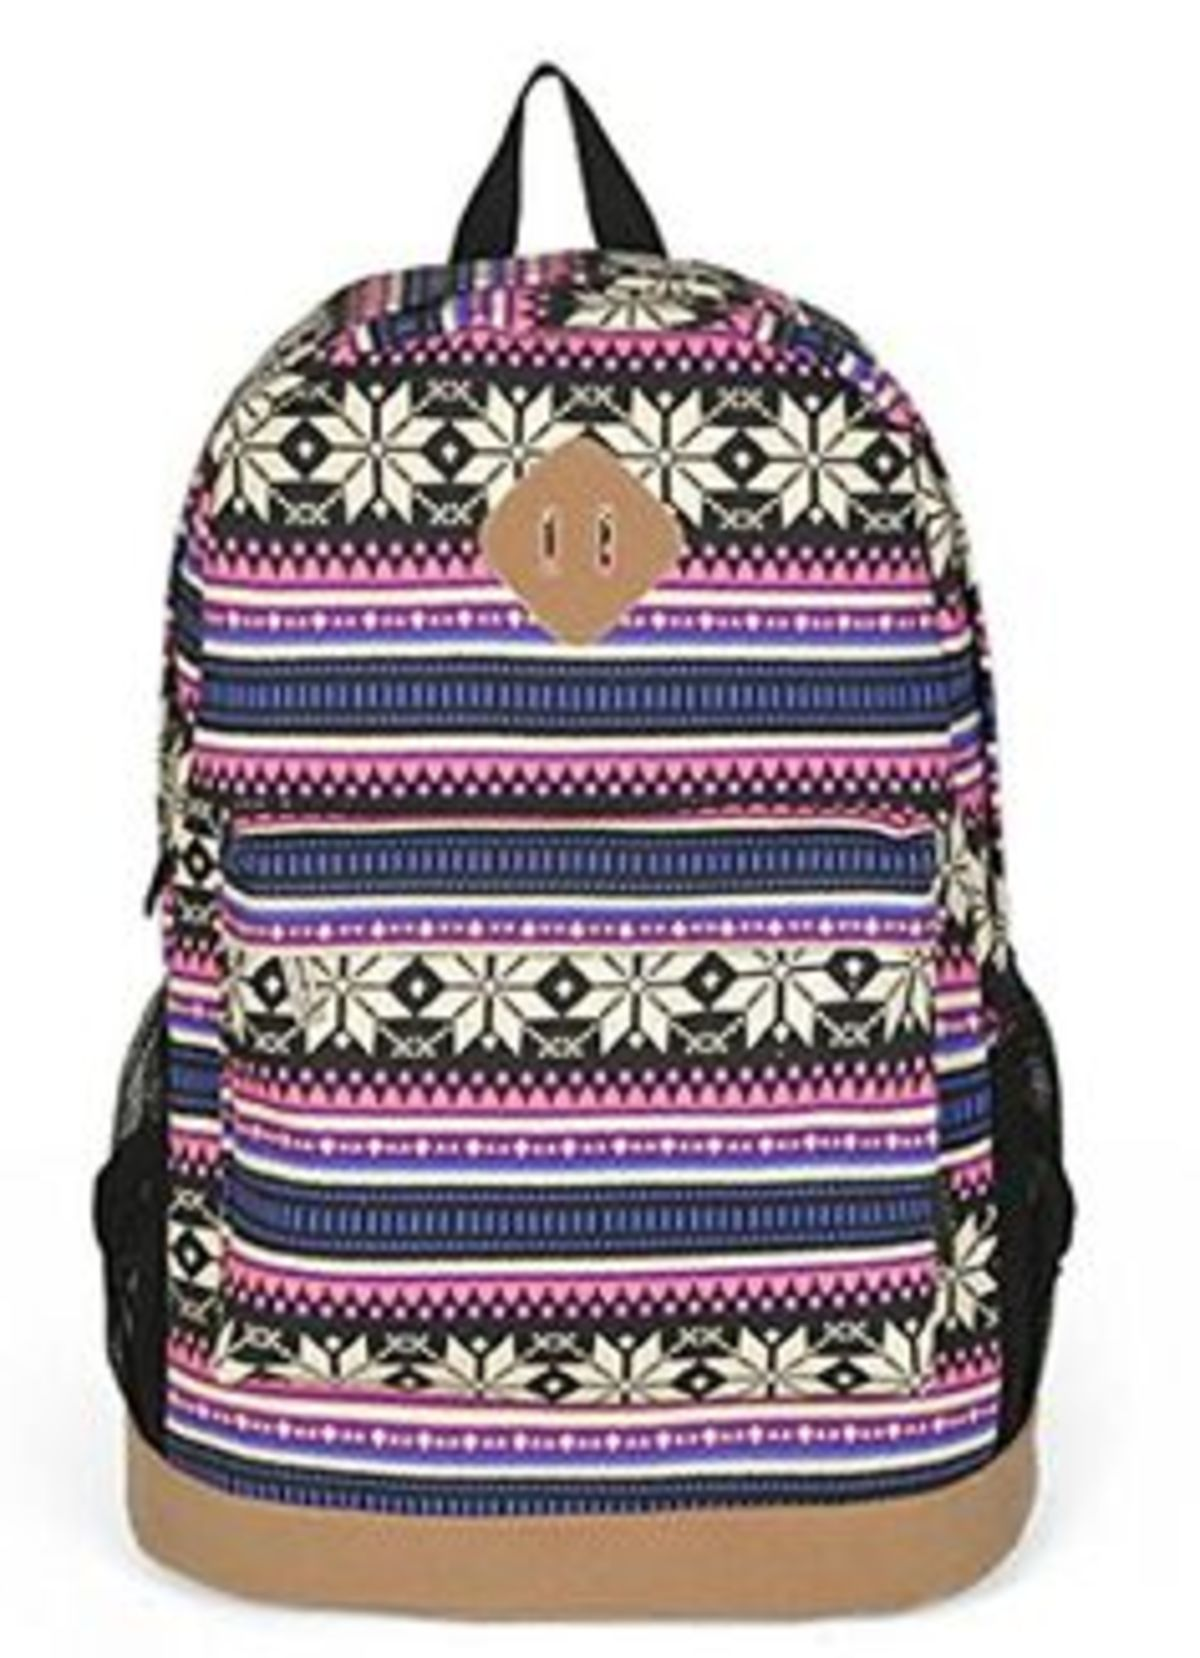 Best Stylish Backpacks For College Girls With A Laptop Compartment ...